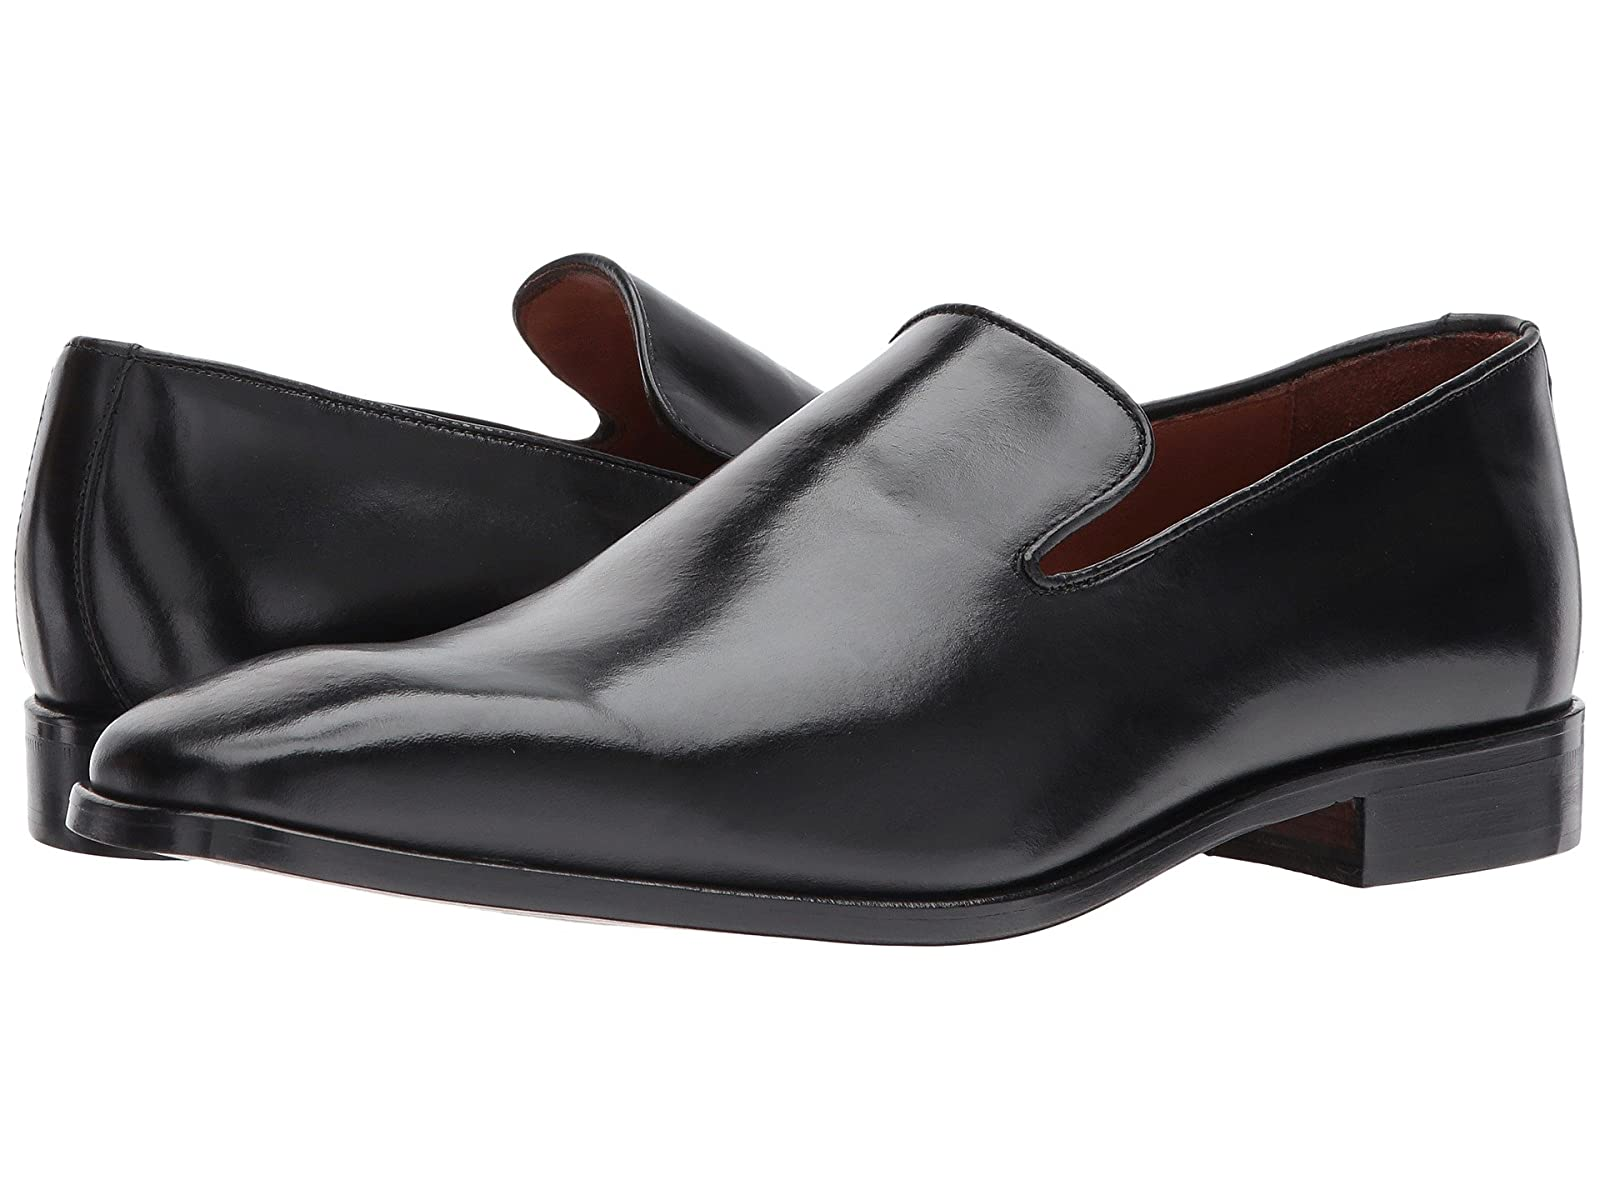 Massimo Matteo Loafer 17Atmospheric grades have affordable shoes